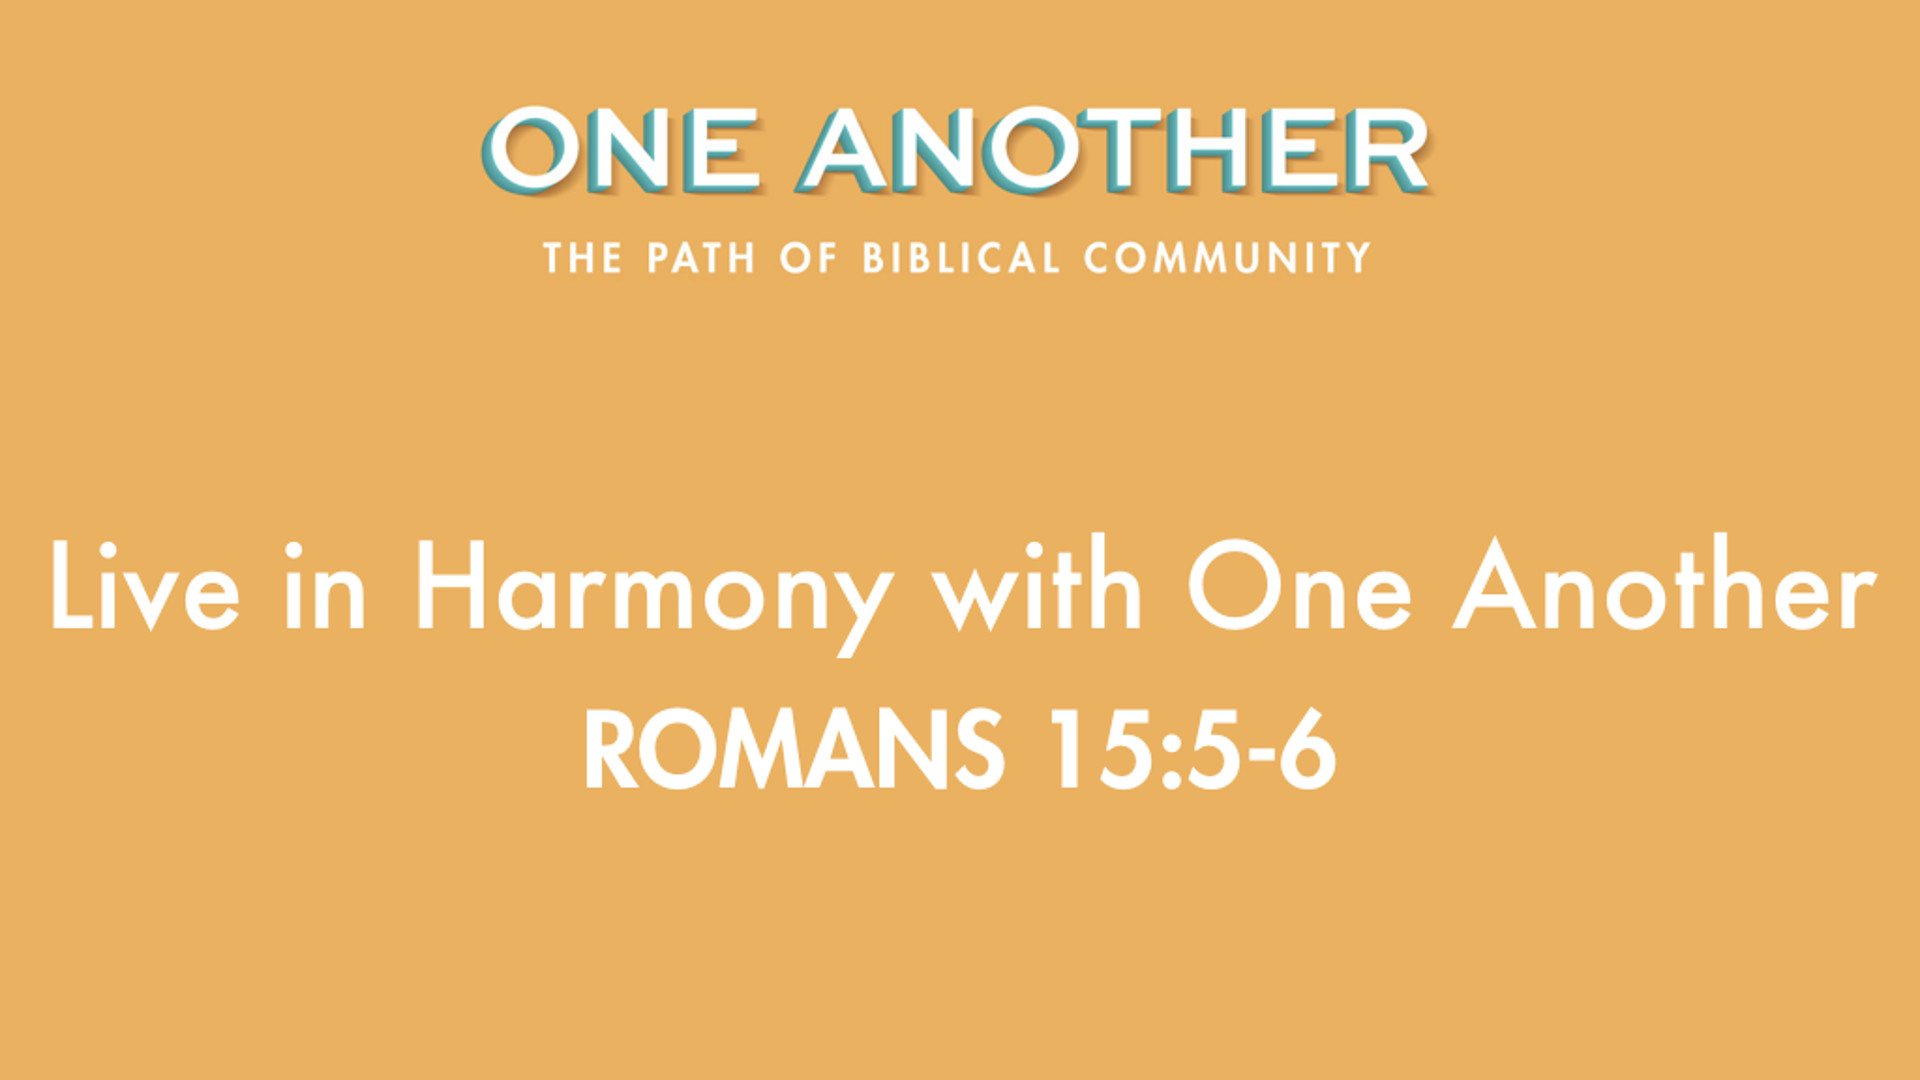 2Live in Harmony with One Another - Romans 15.5-6.jpg